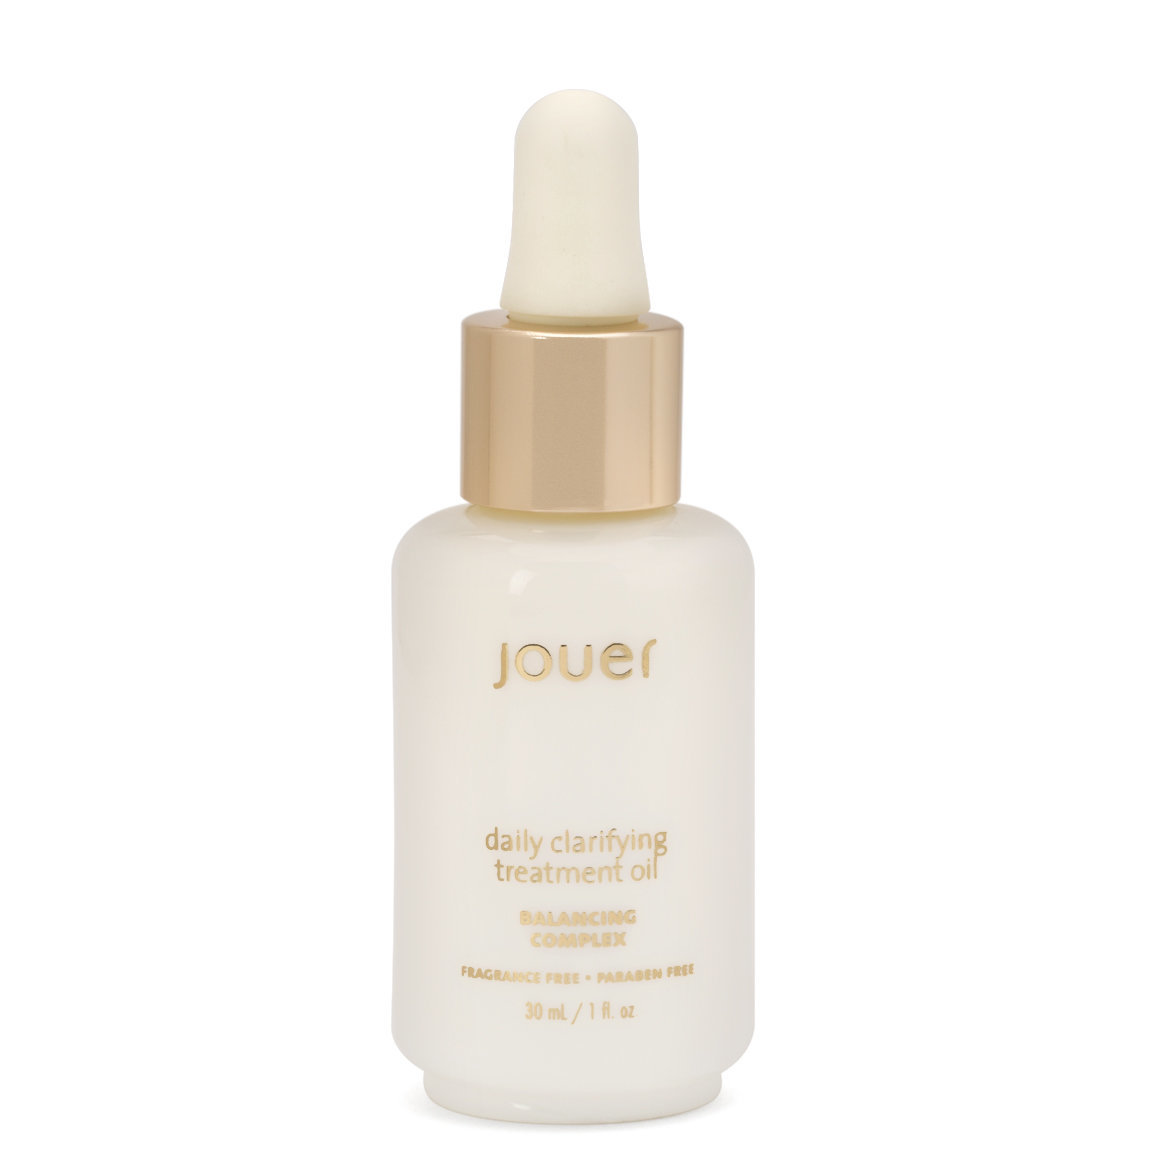 Jouer Cosmetics Daily Clarifying Treatment Oil product smear.